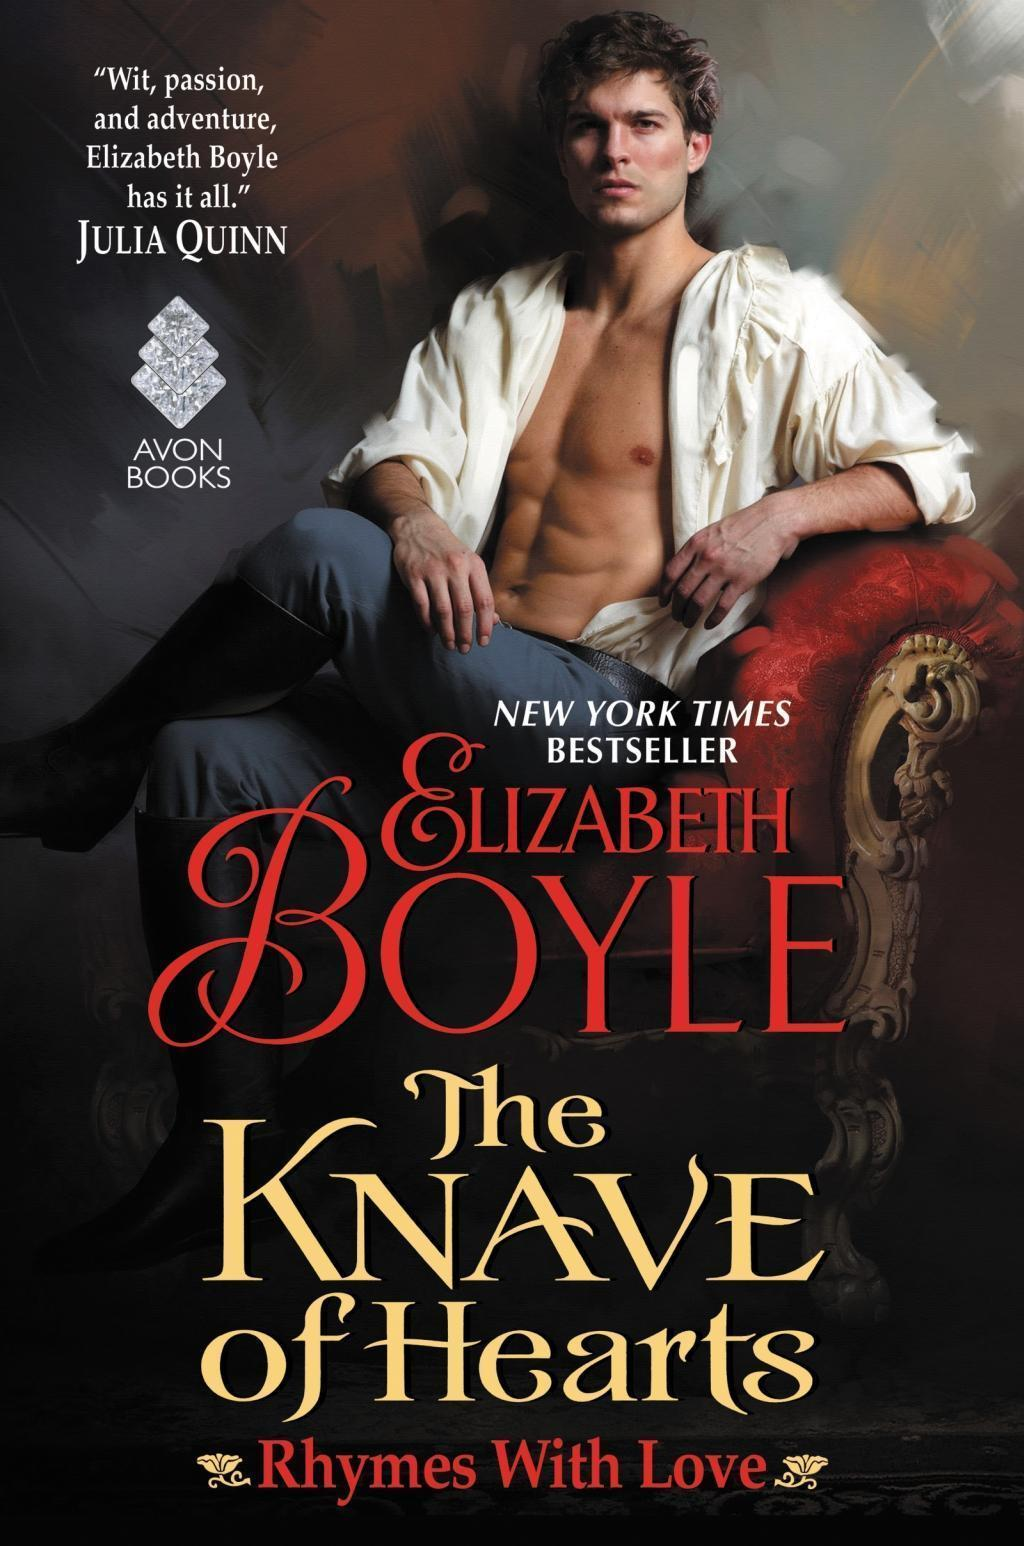 The Knave of Hearts